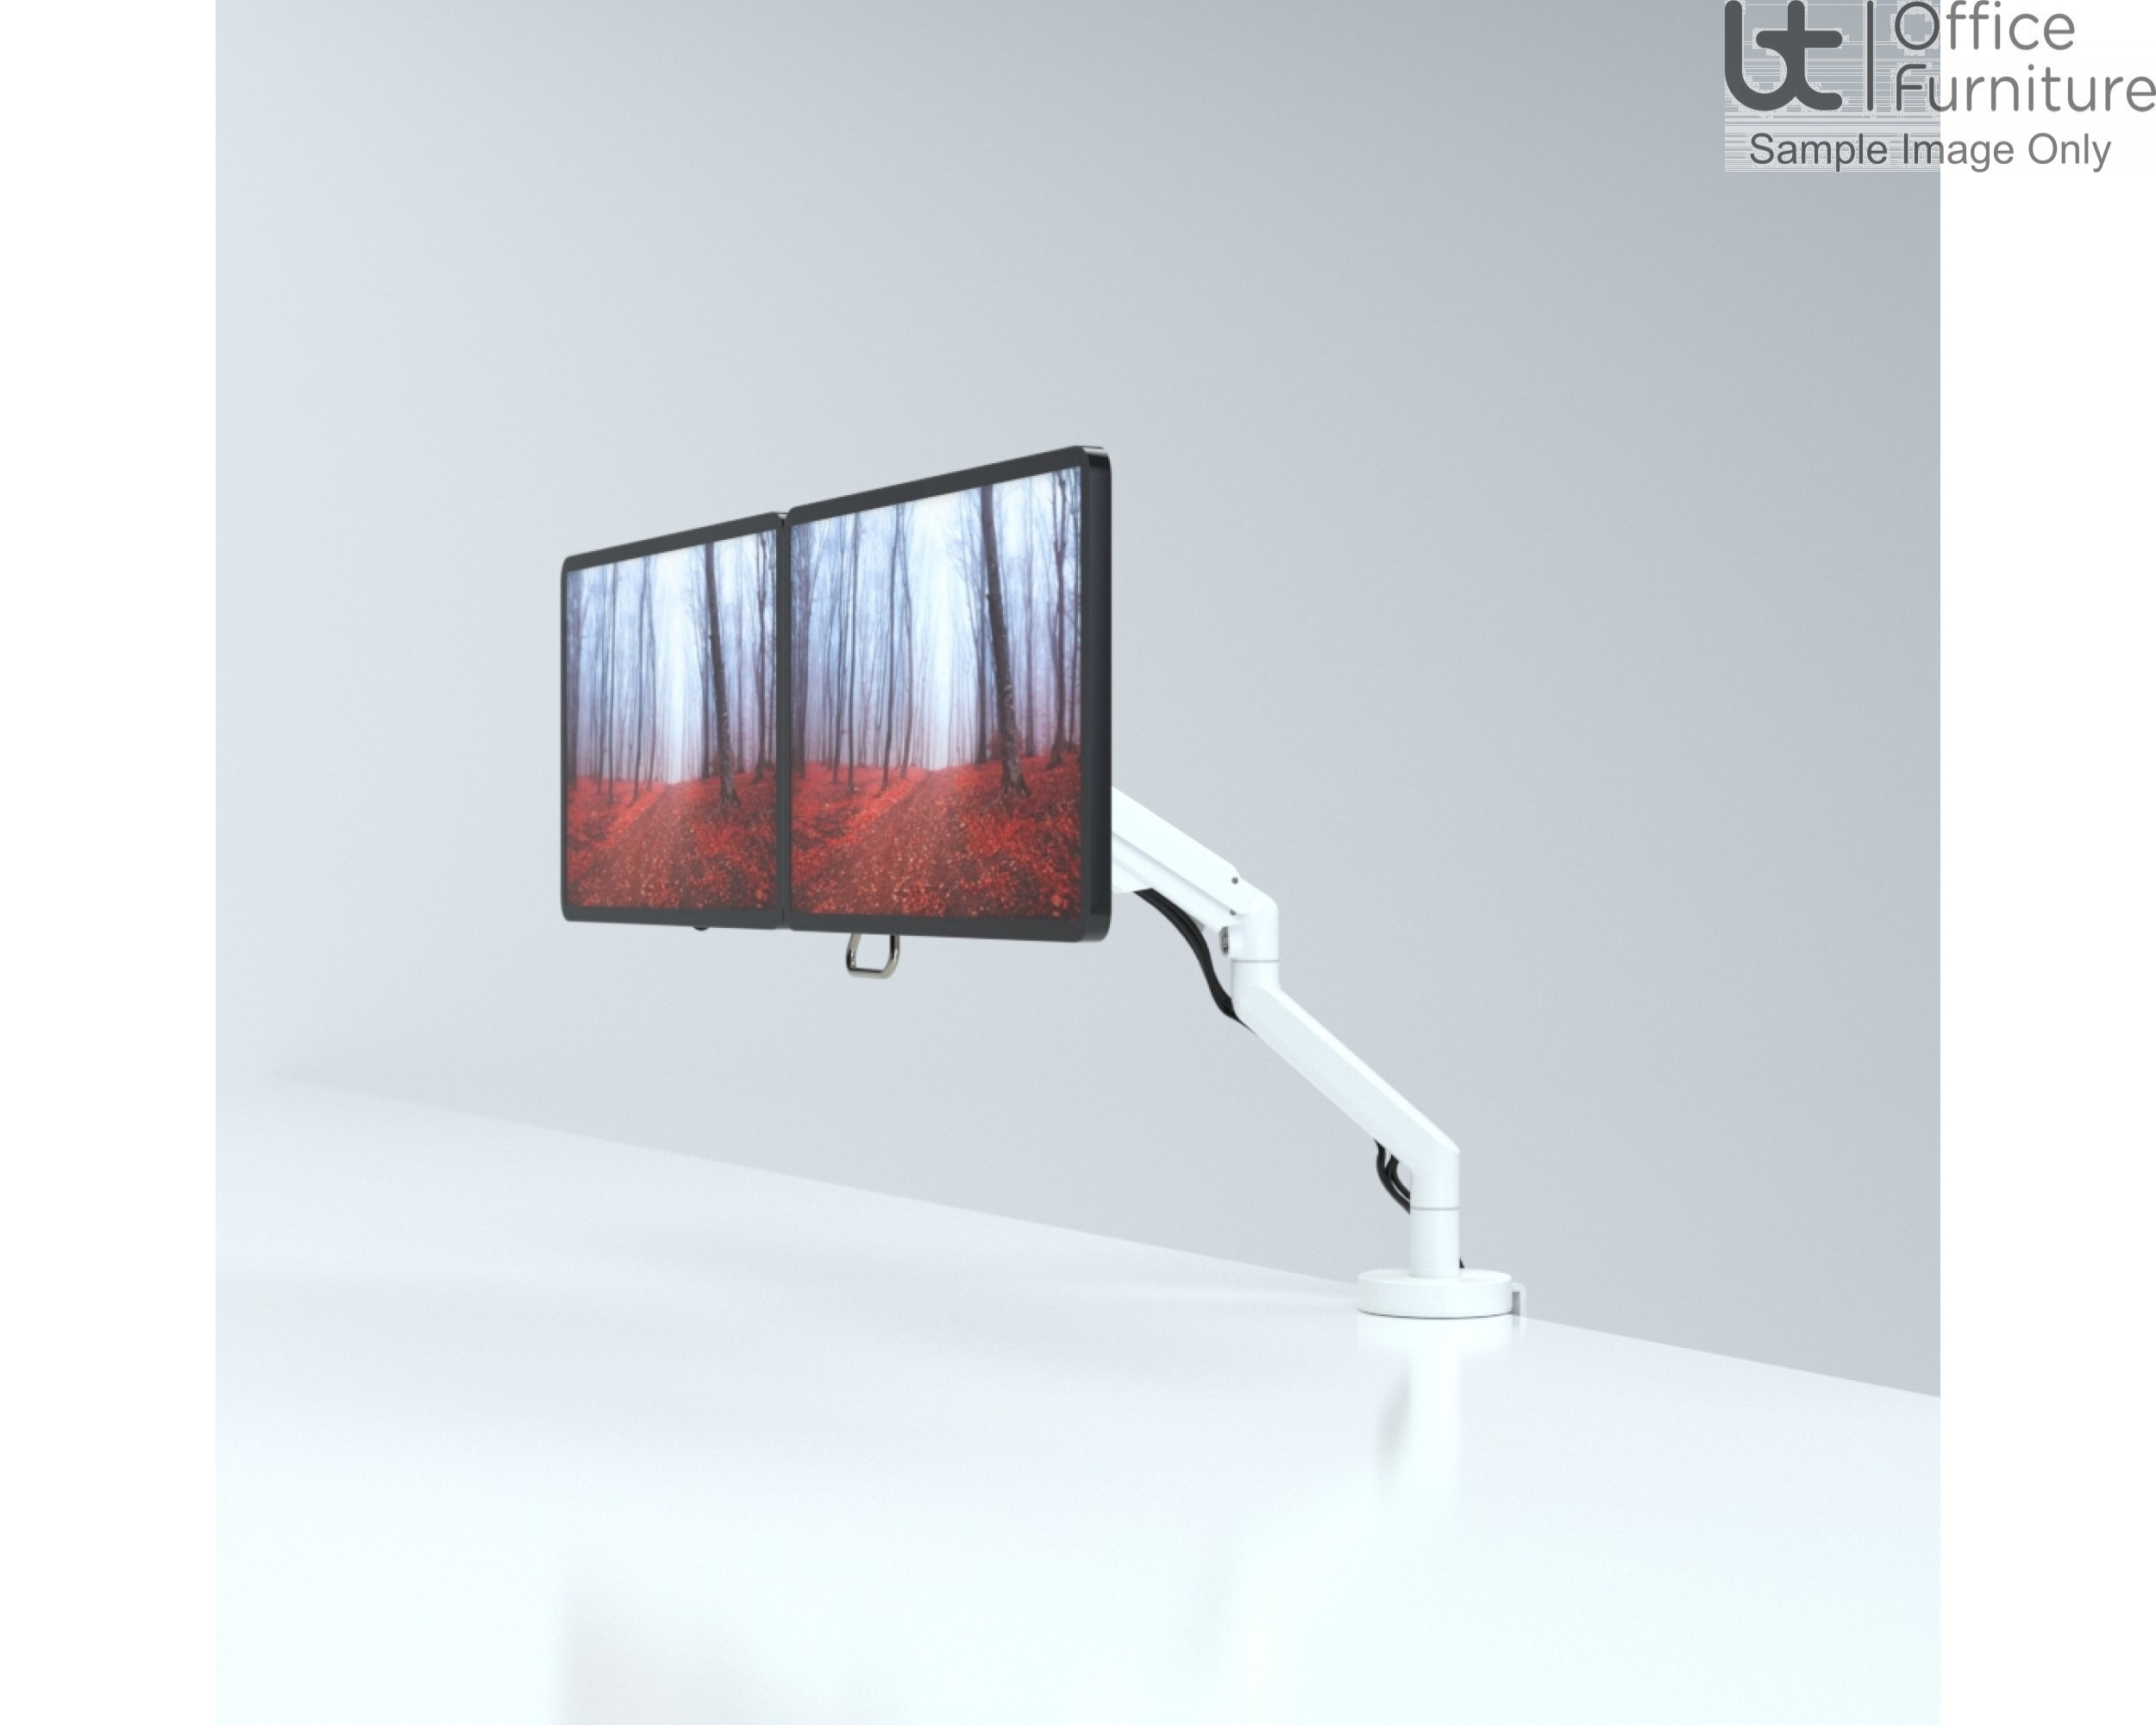 Reach Plus Single Gas Assisted Monitor Arm - (6KG to 15KG Monitor) - Quick Release VESA